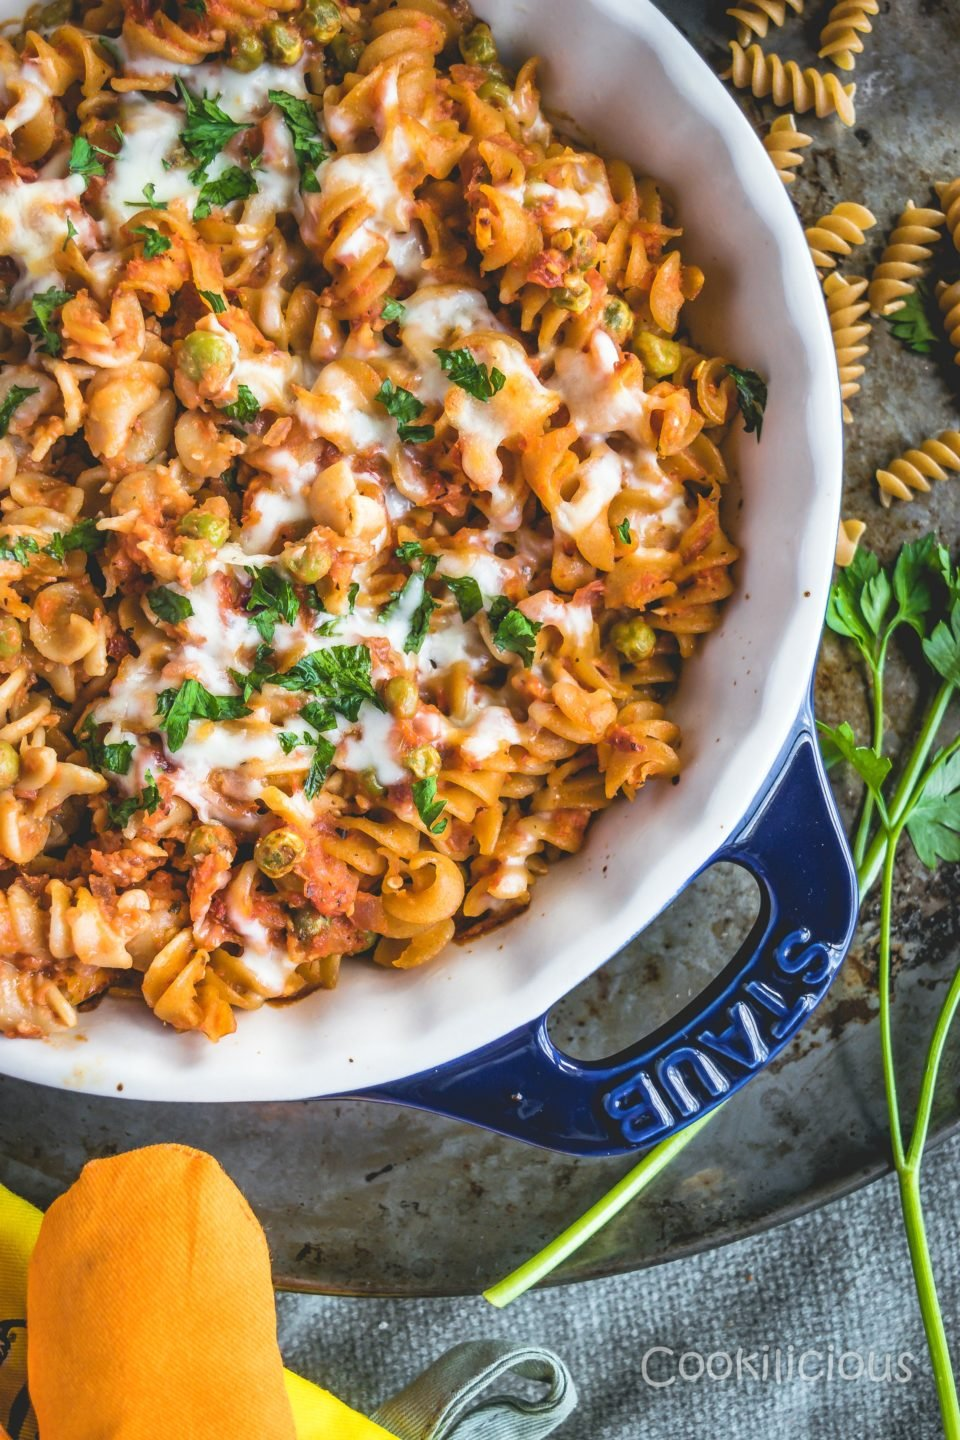 flat lay shot of a dish with Easy Cheesy Tomato Rotini Pasta Bake with grated cheese on top